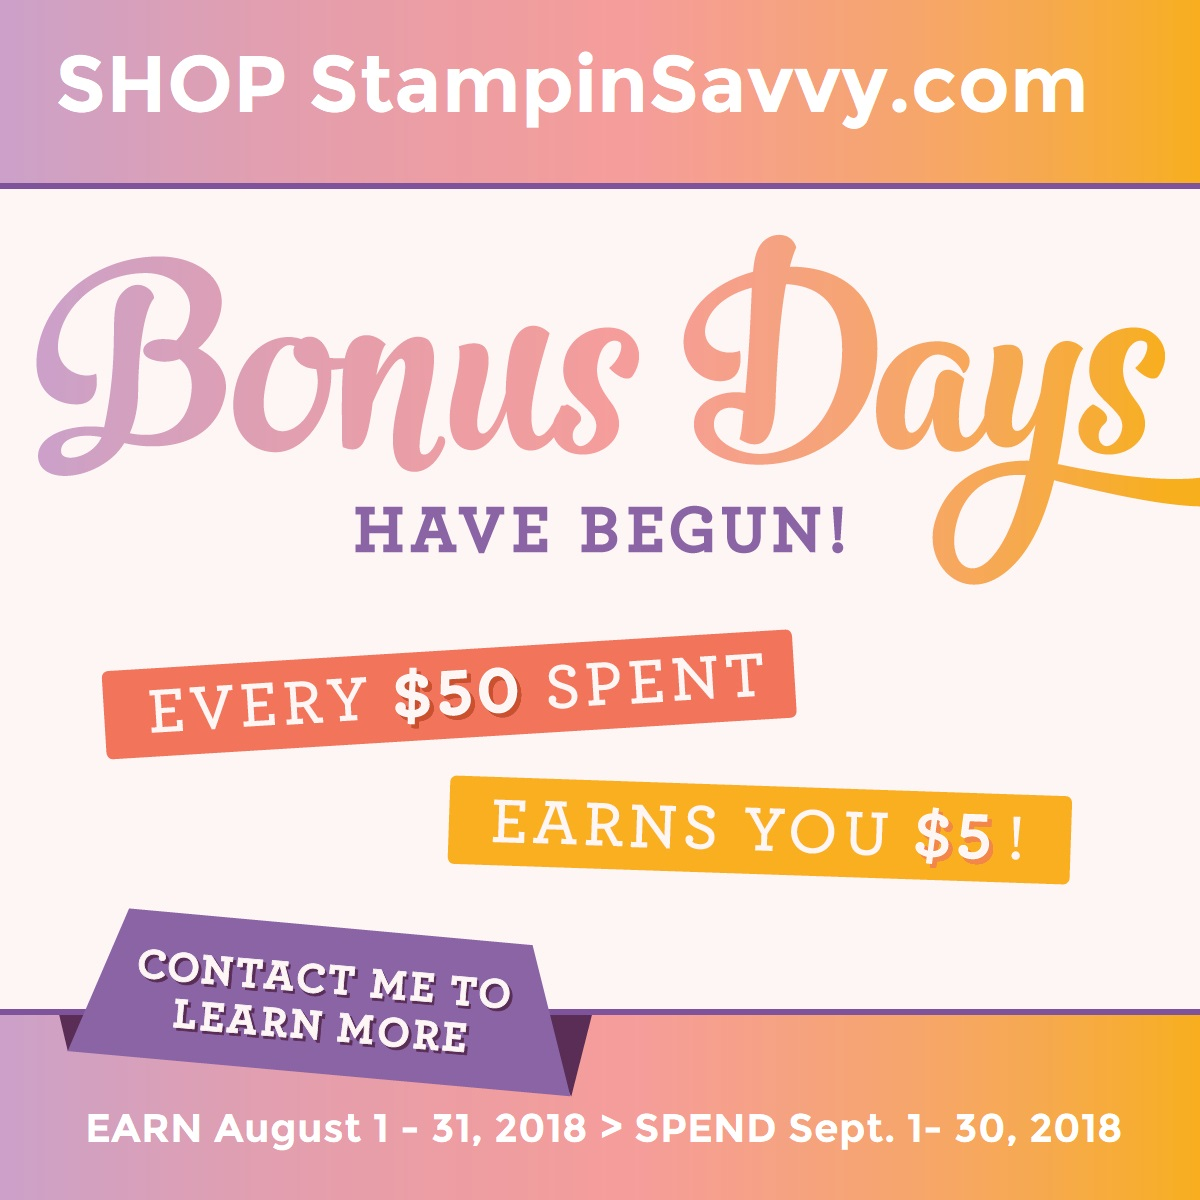 08.01.18_BONUS-DAYS_SHAREABLE-IMAGE_US stampin savvy